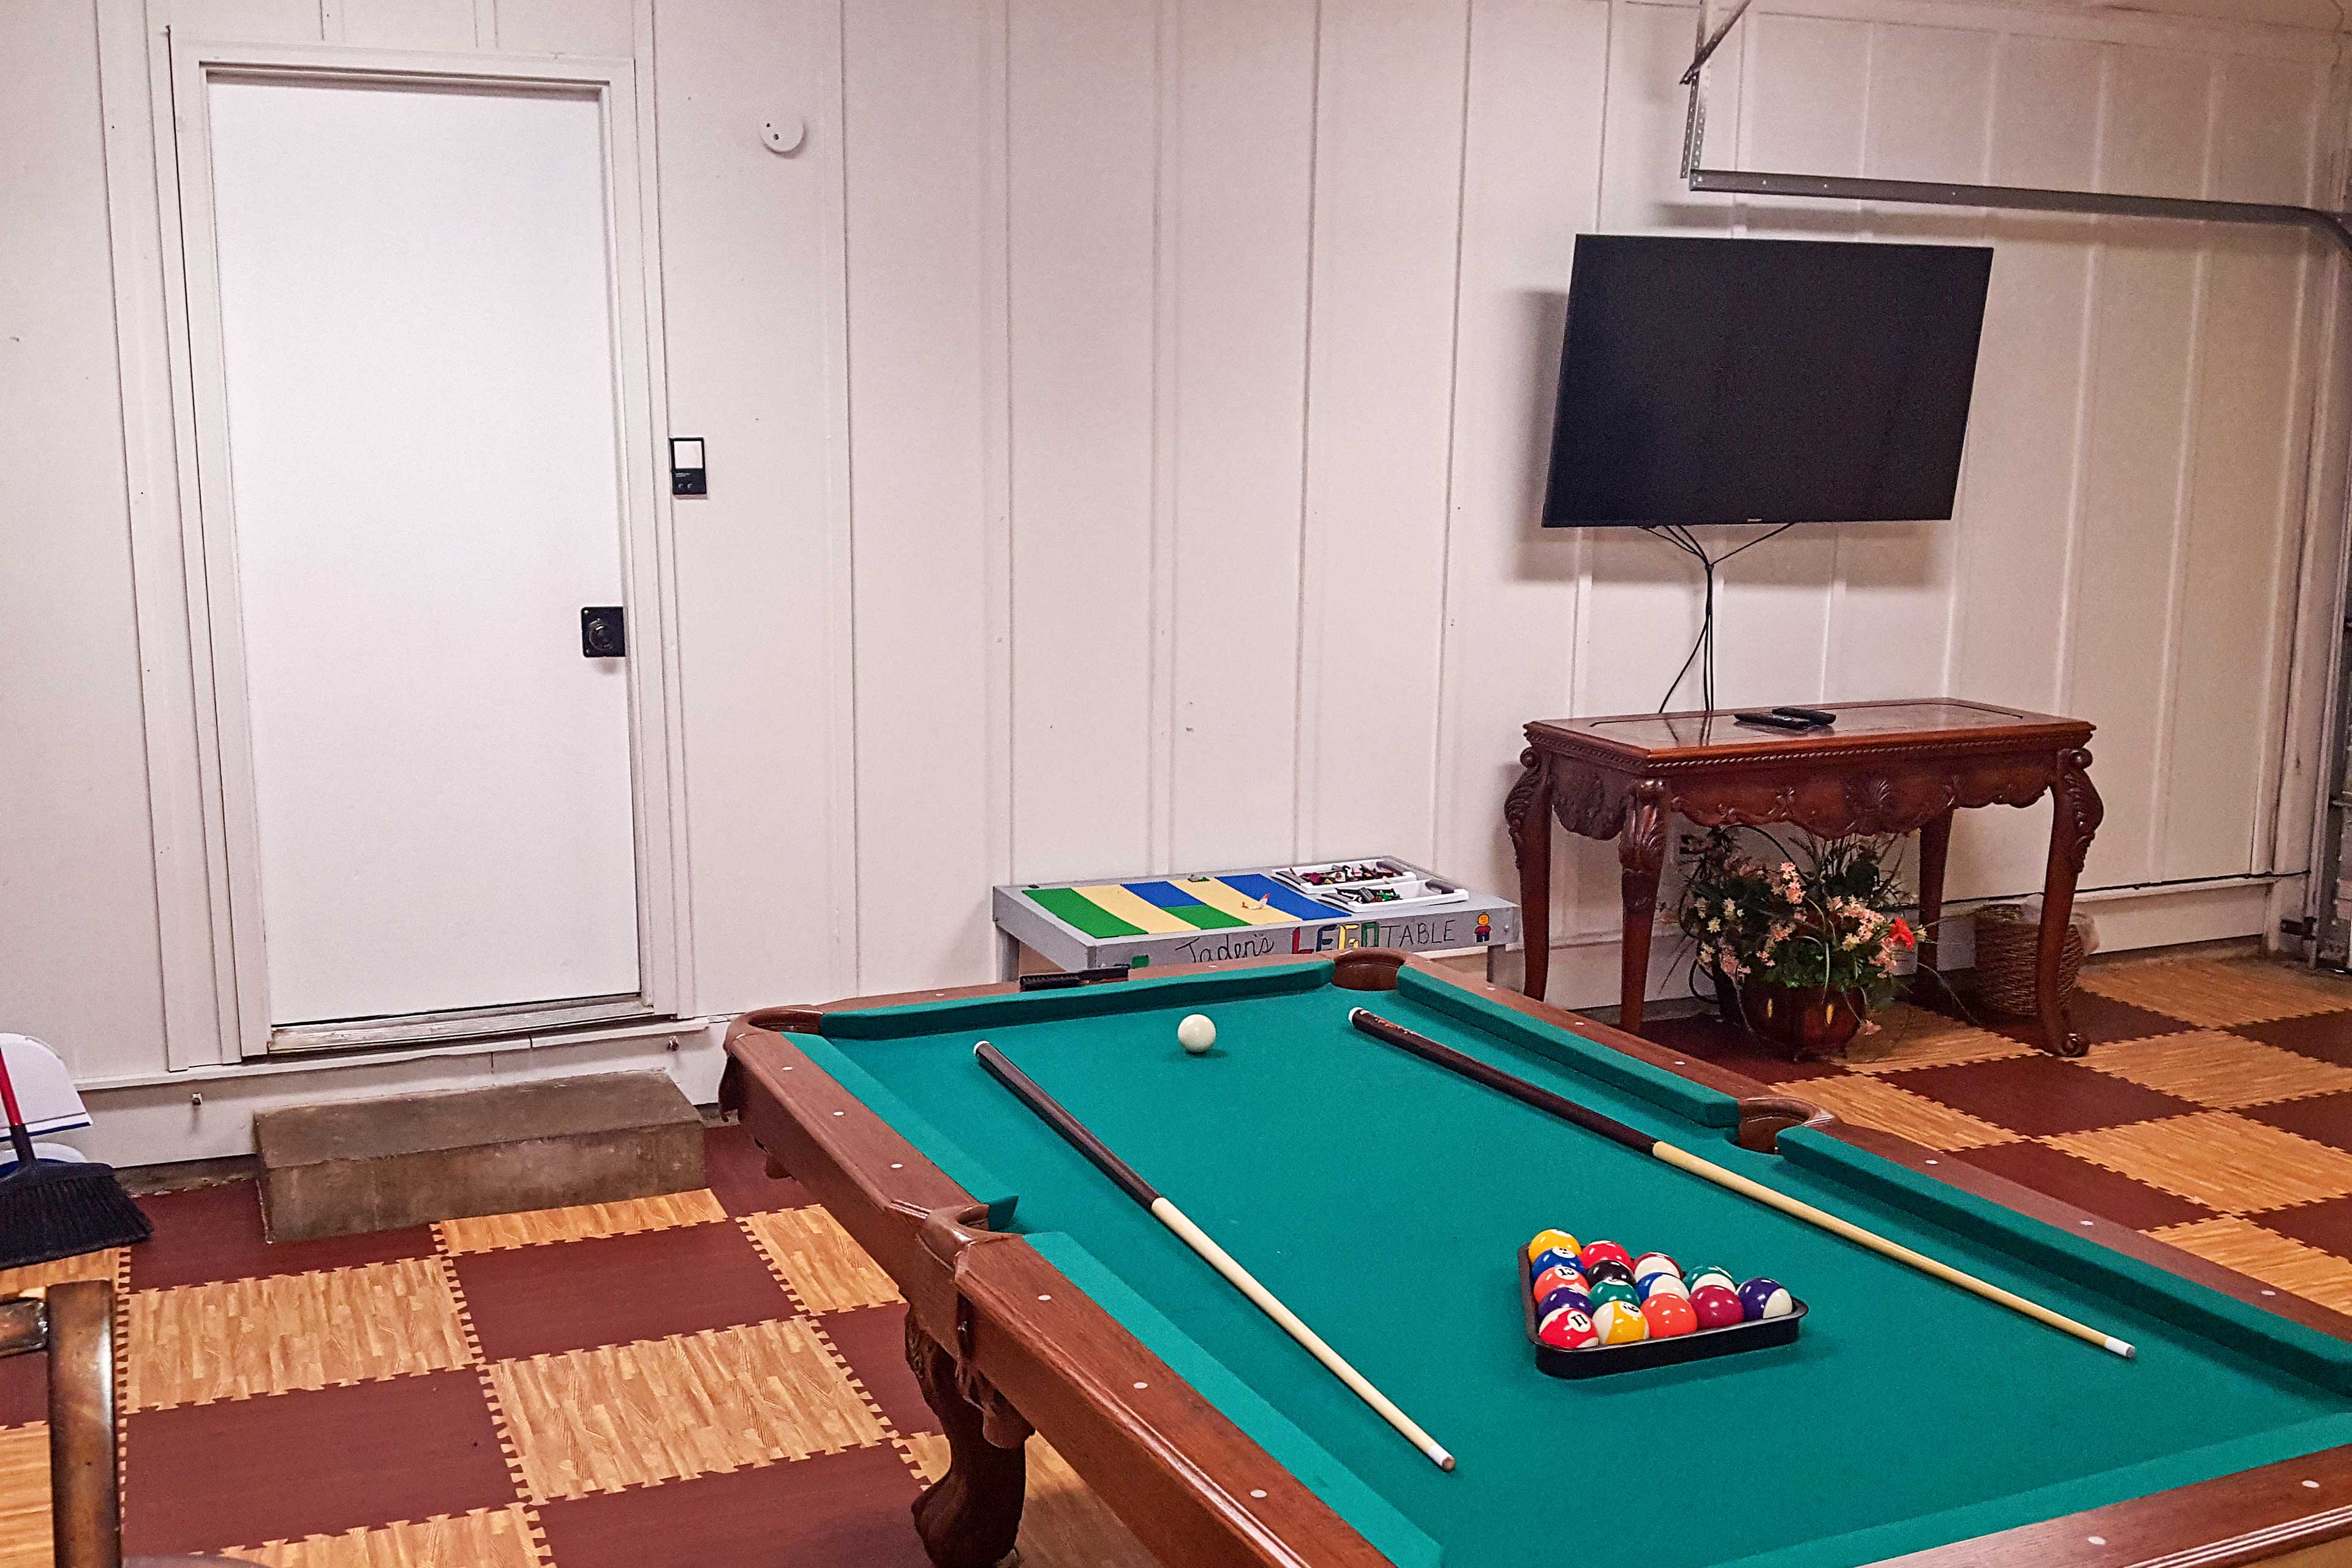 Watch a movie in the game room on the new flat-screen TV!